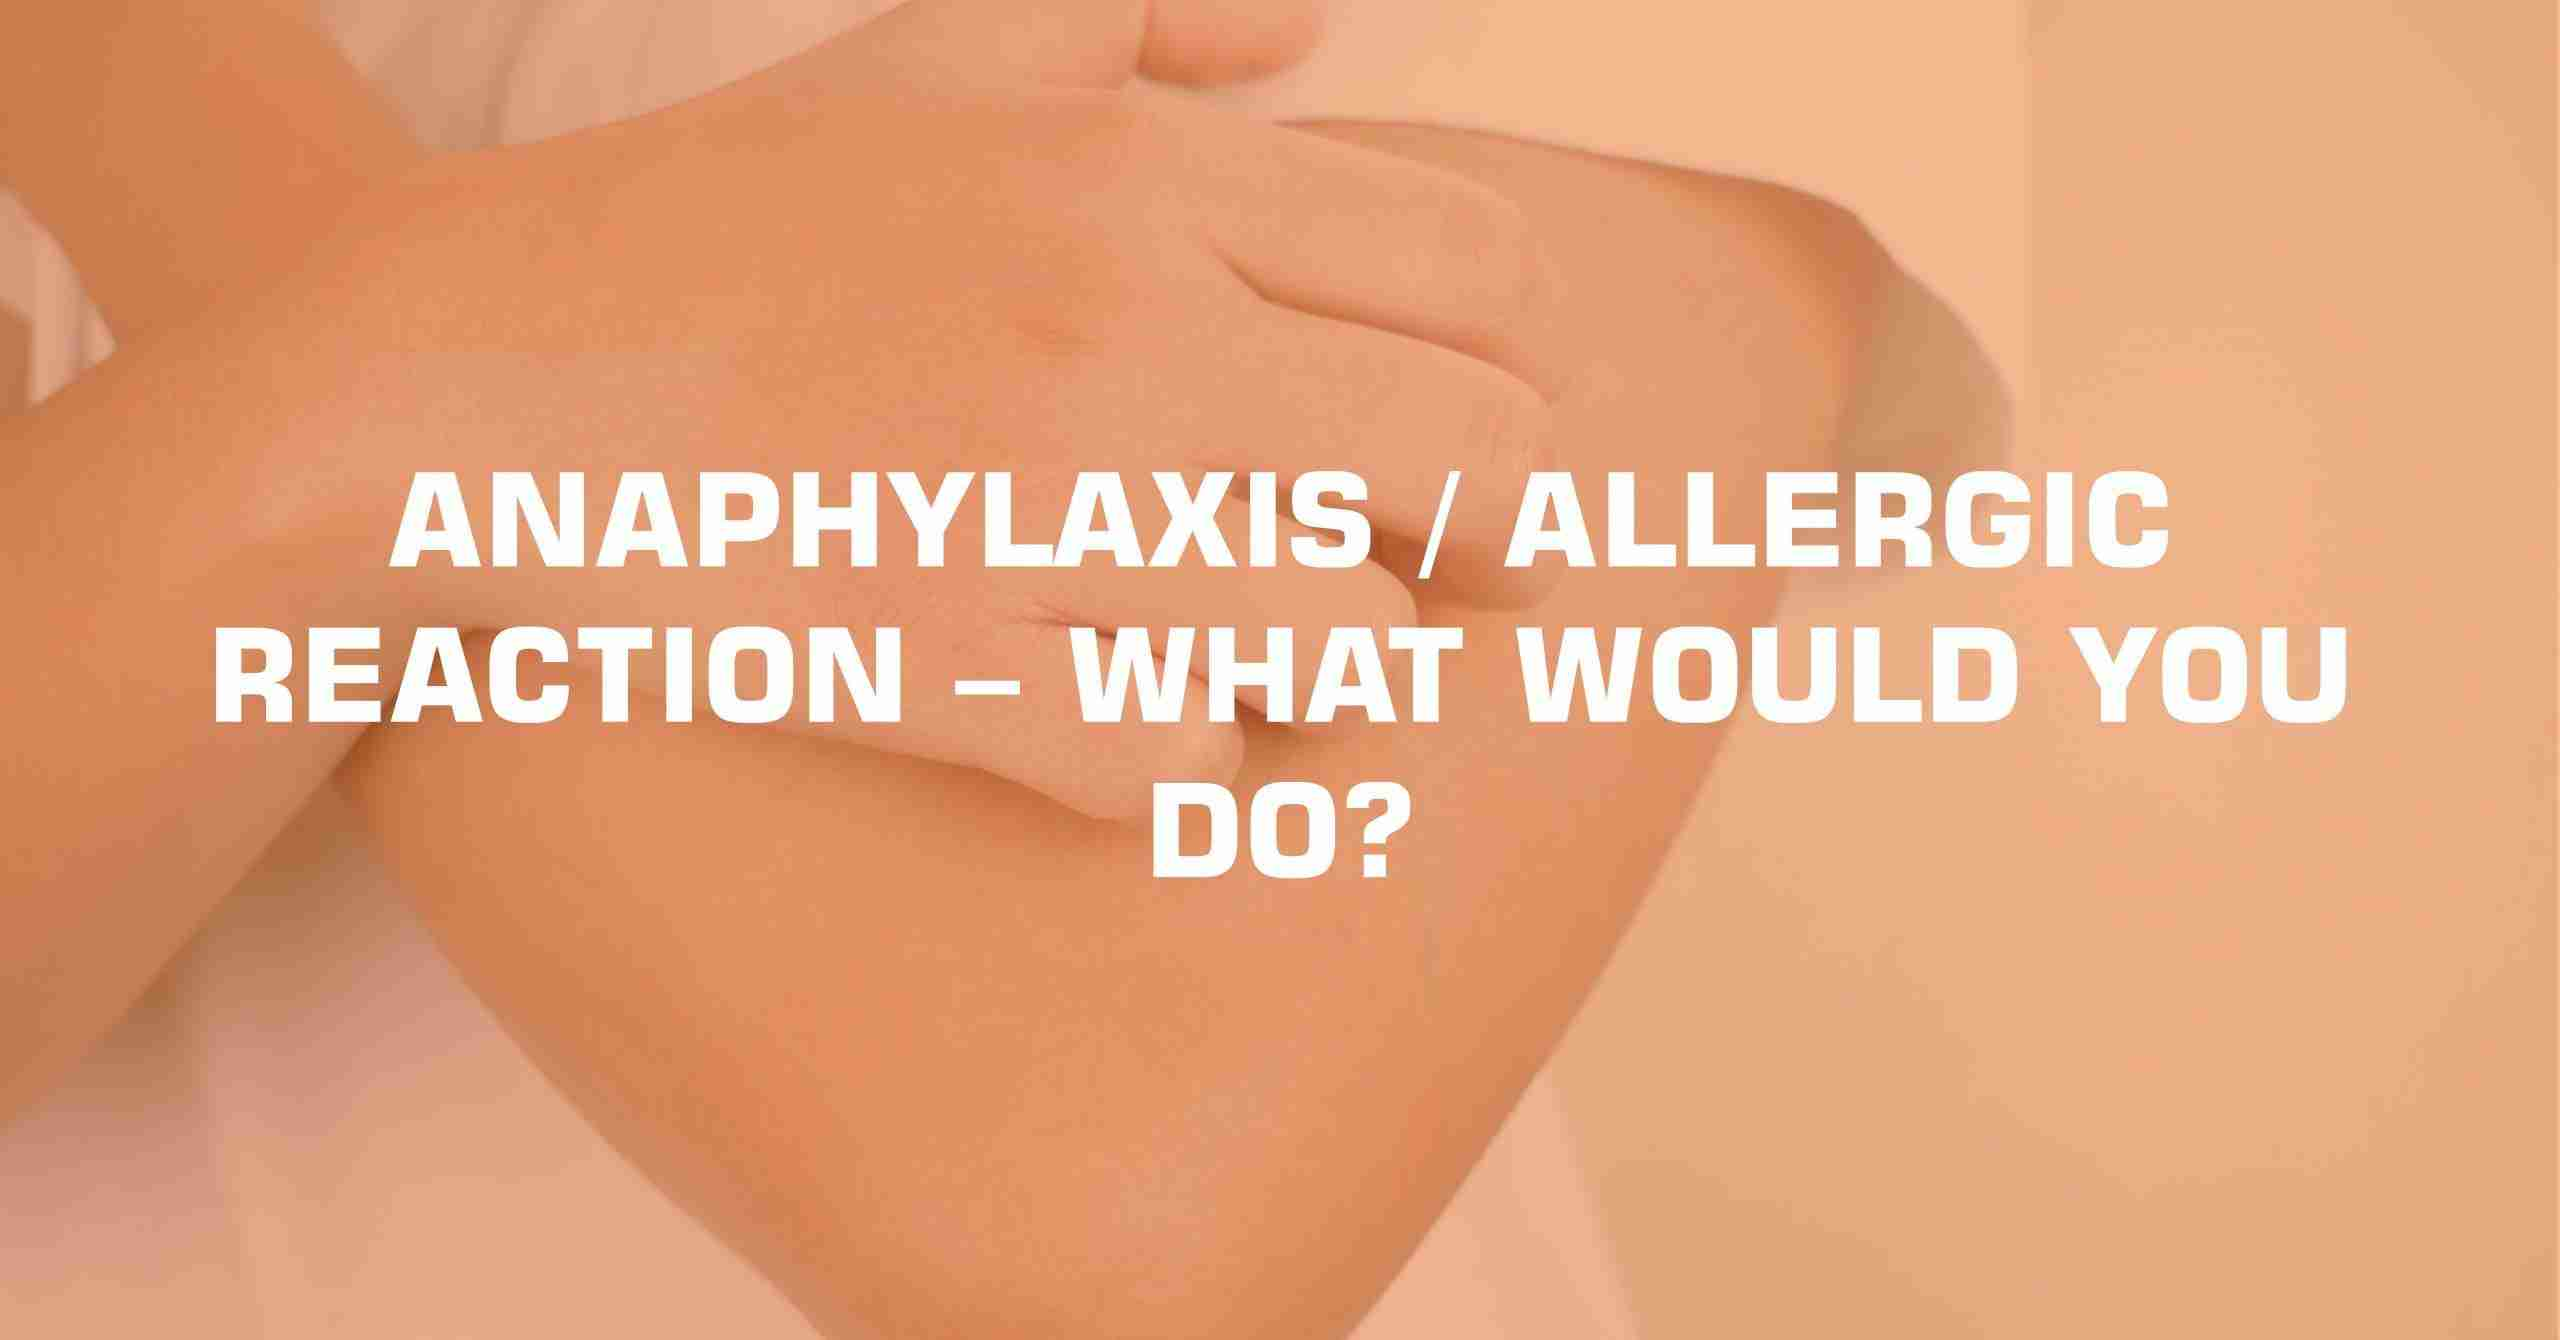 ANAPHYLAXIS ALLERGIC REACTION – WHAT WOULD YOU DO scaled